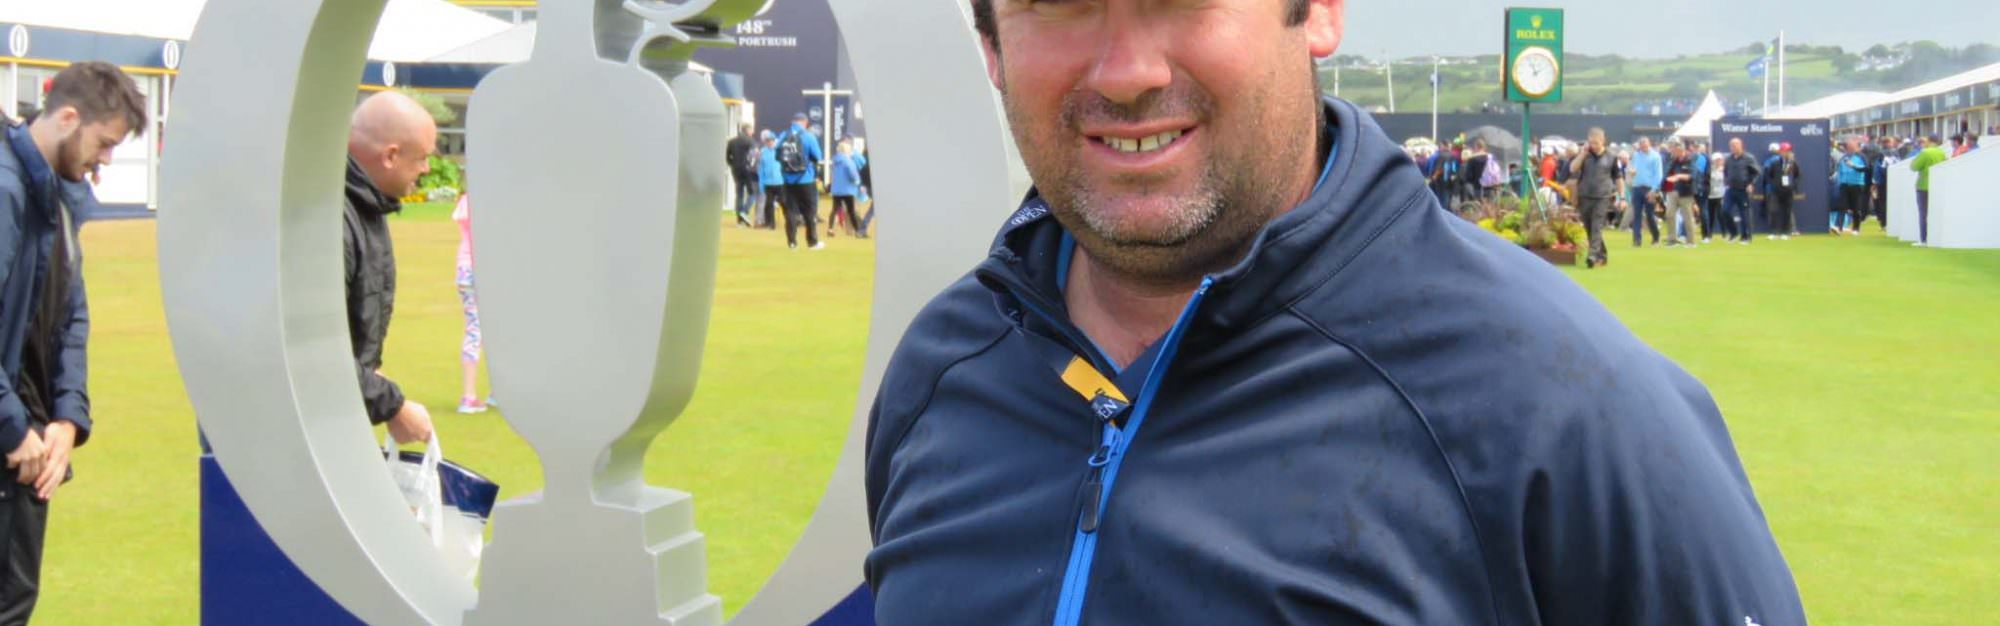 Meet the other McDowell at this year's Open